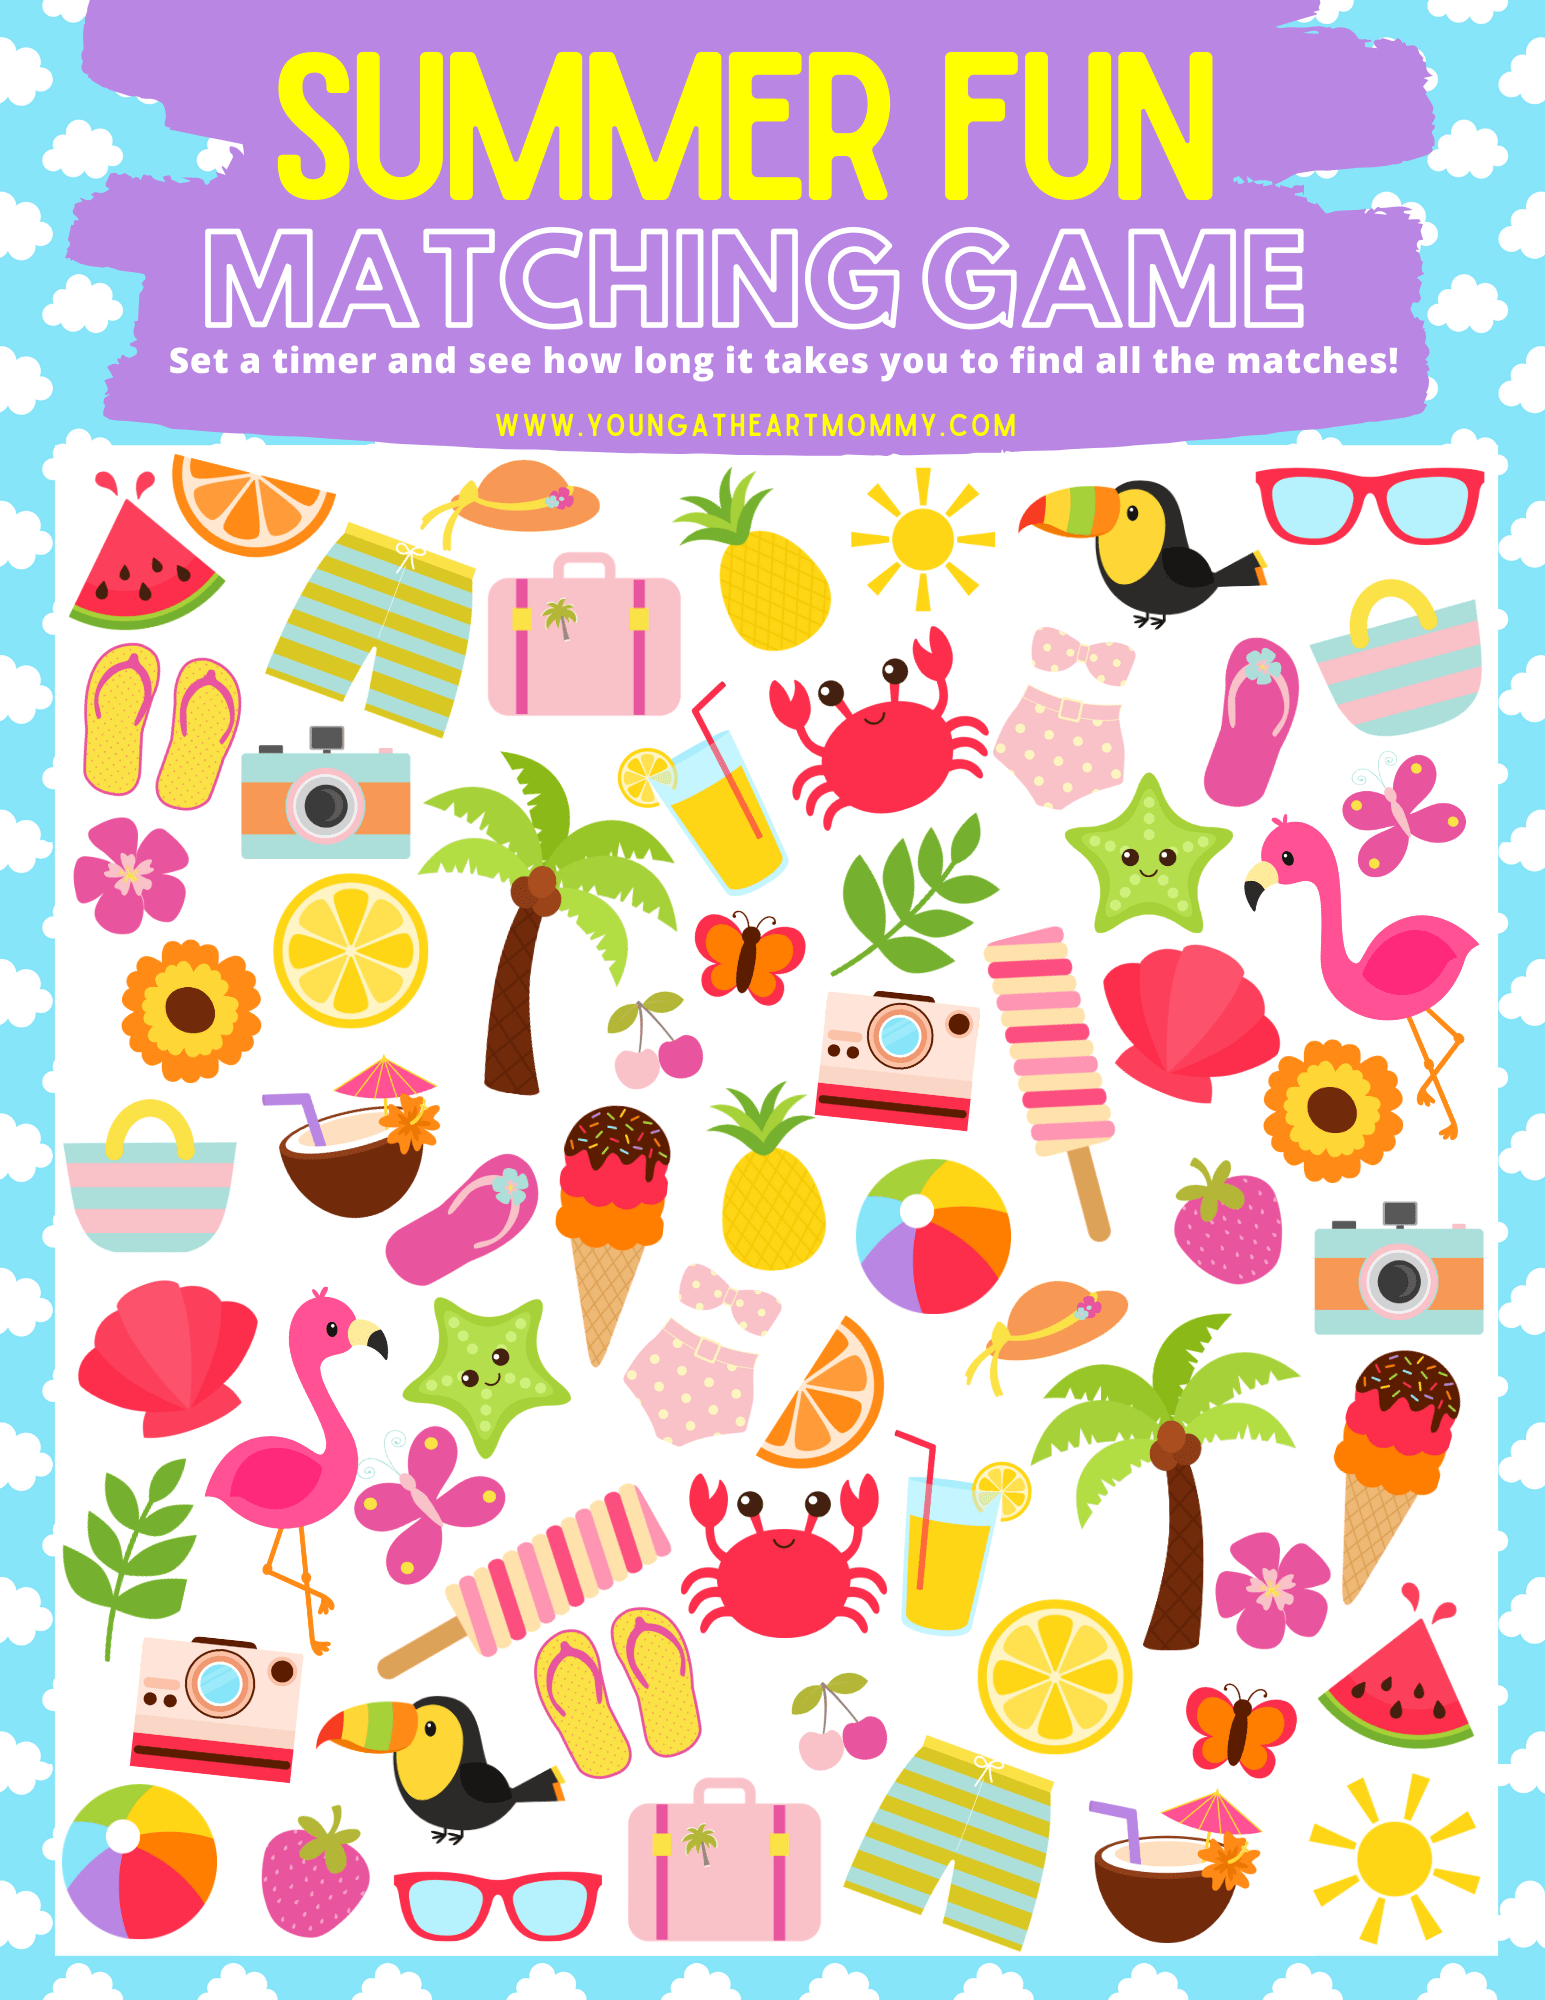 Free Summer Fun Matching Game Printable